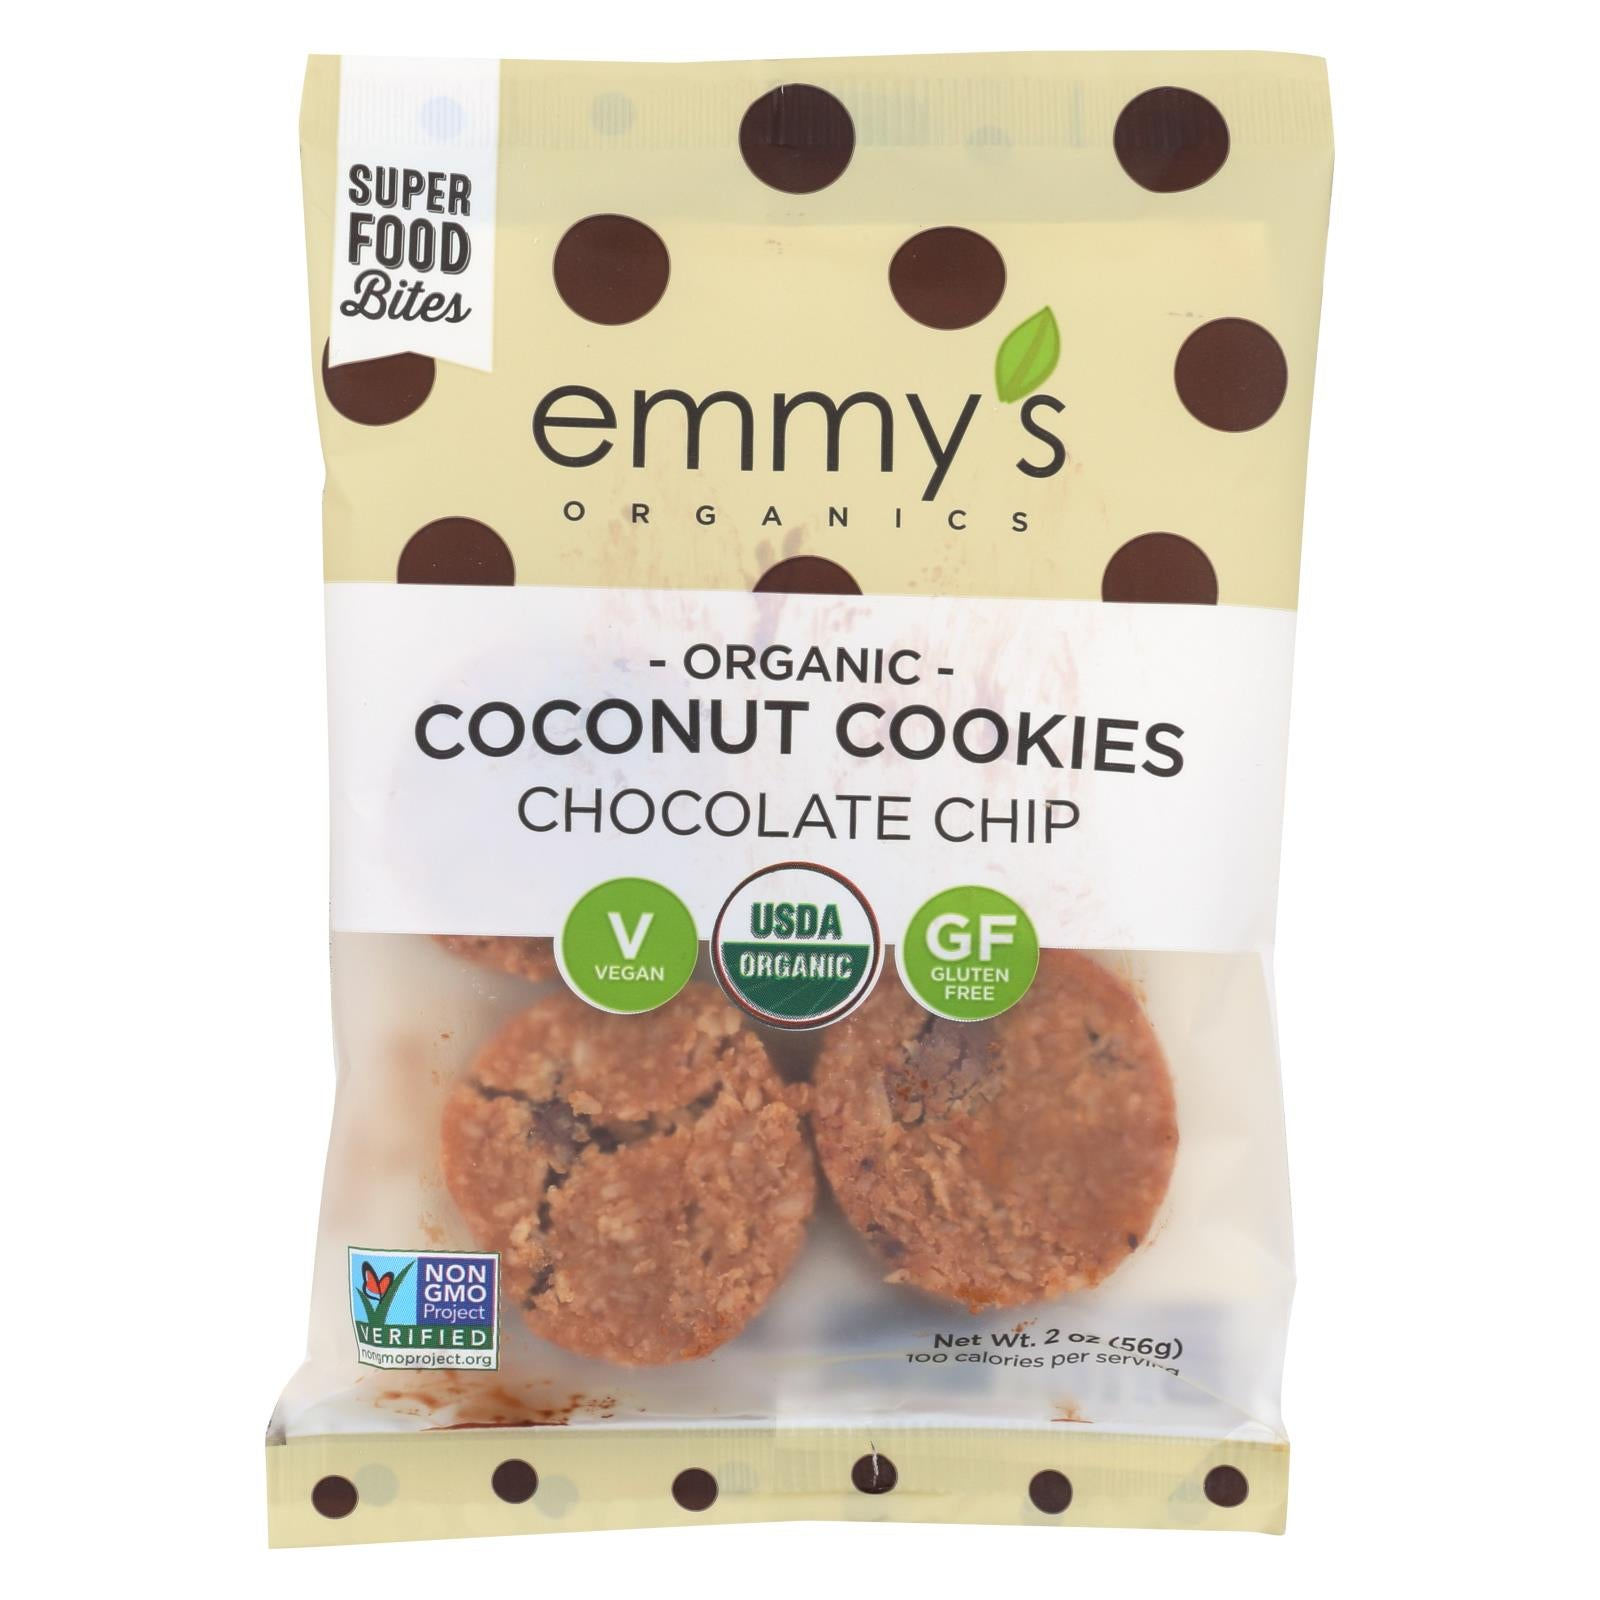 Emmy's Organics Chocolate Chip Coconut Cookies